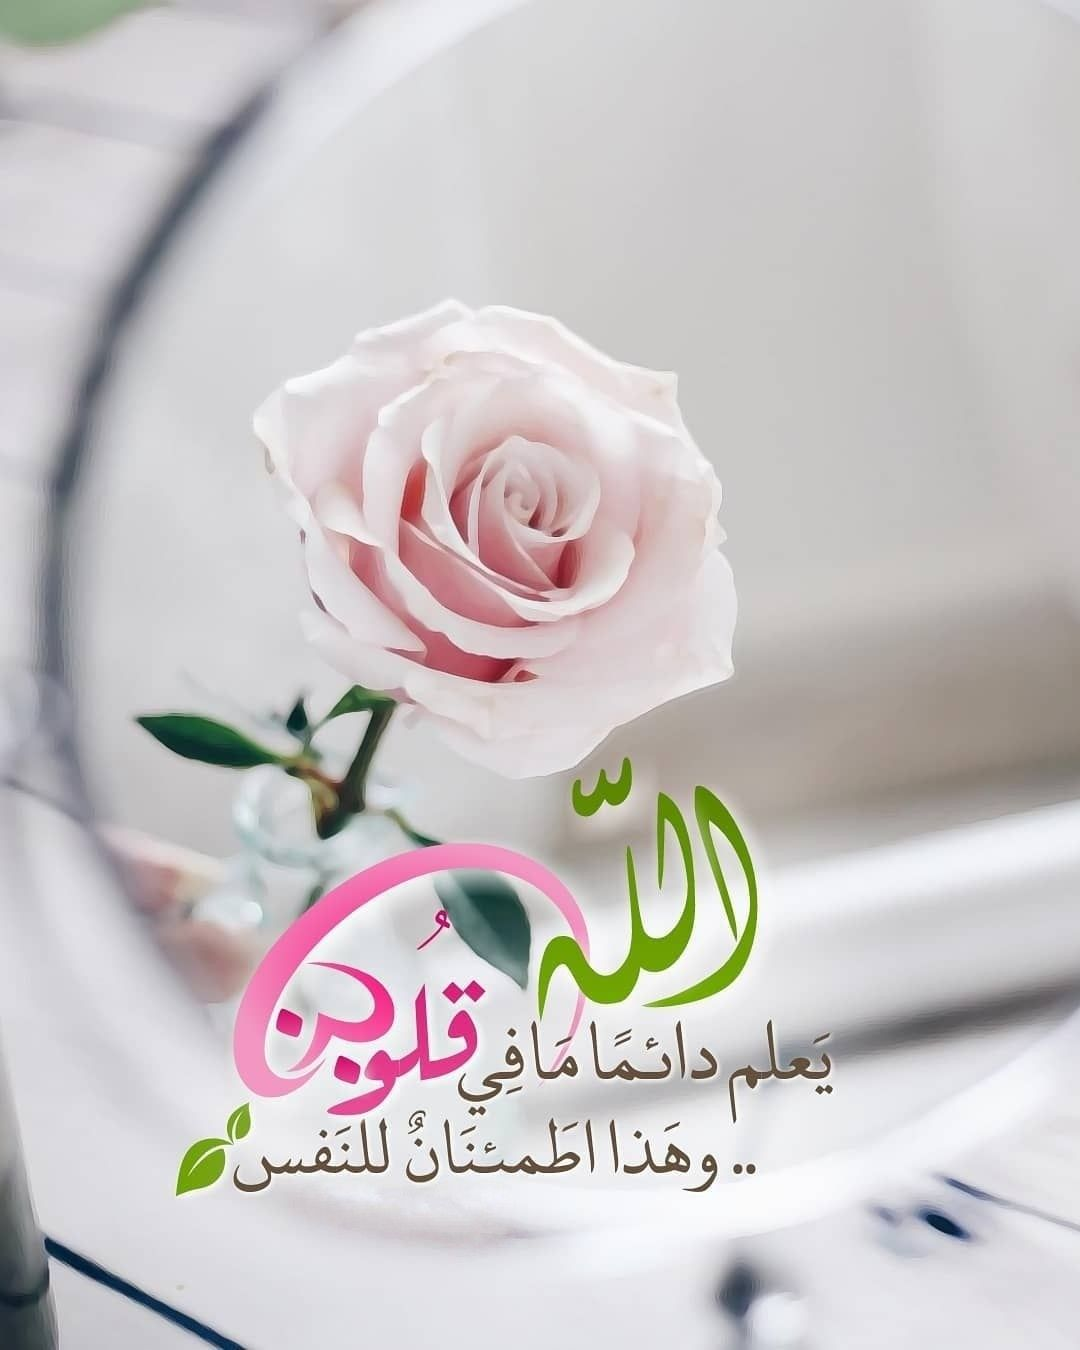 Pin By Maher Dabour On الام ـــل بالله Islamic Pictures Ramadhan Islam